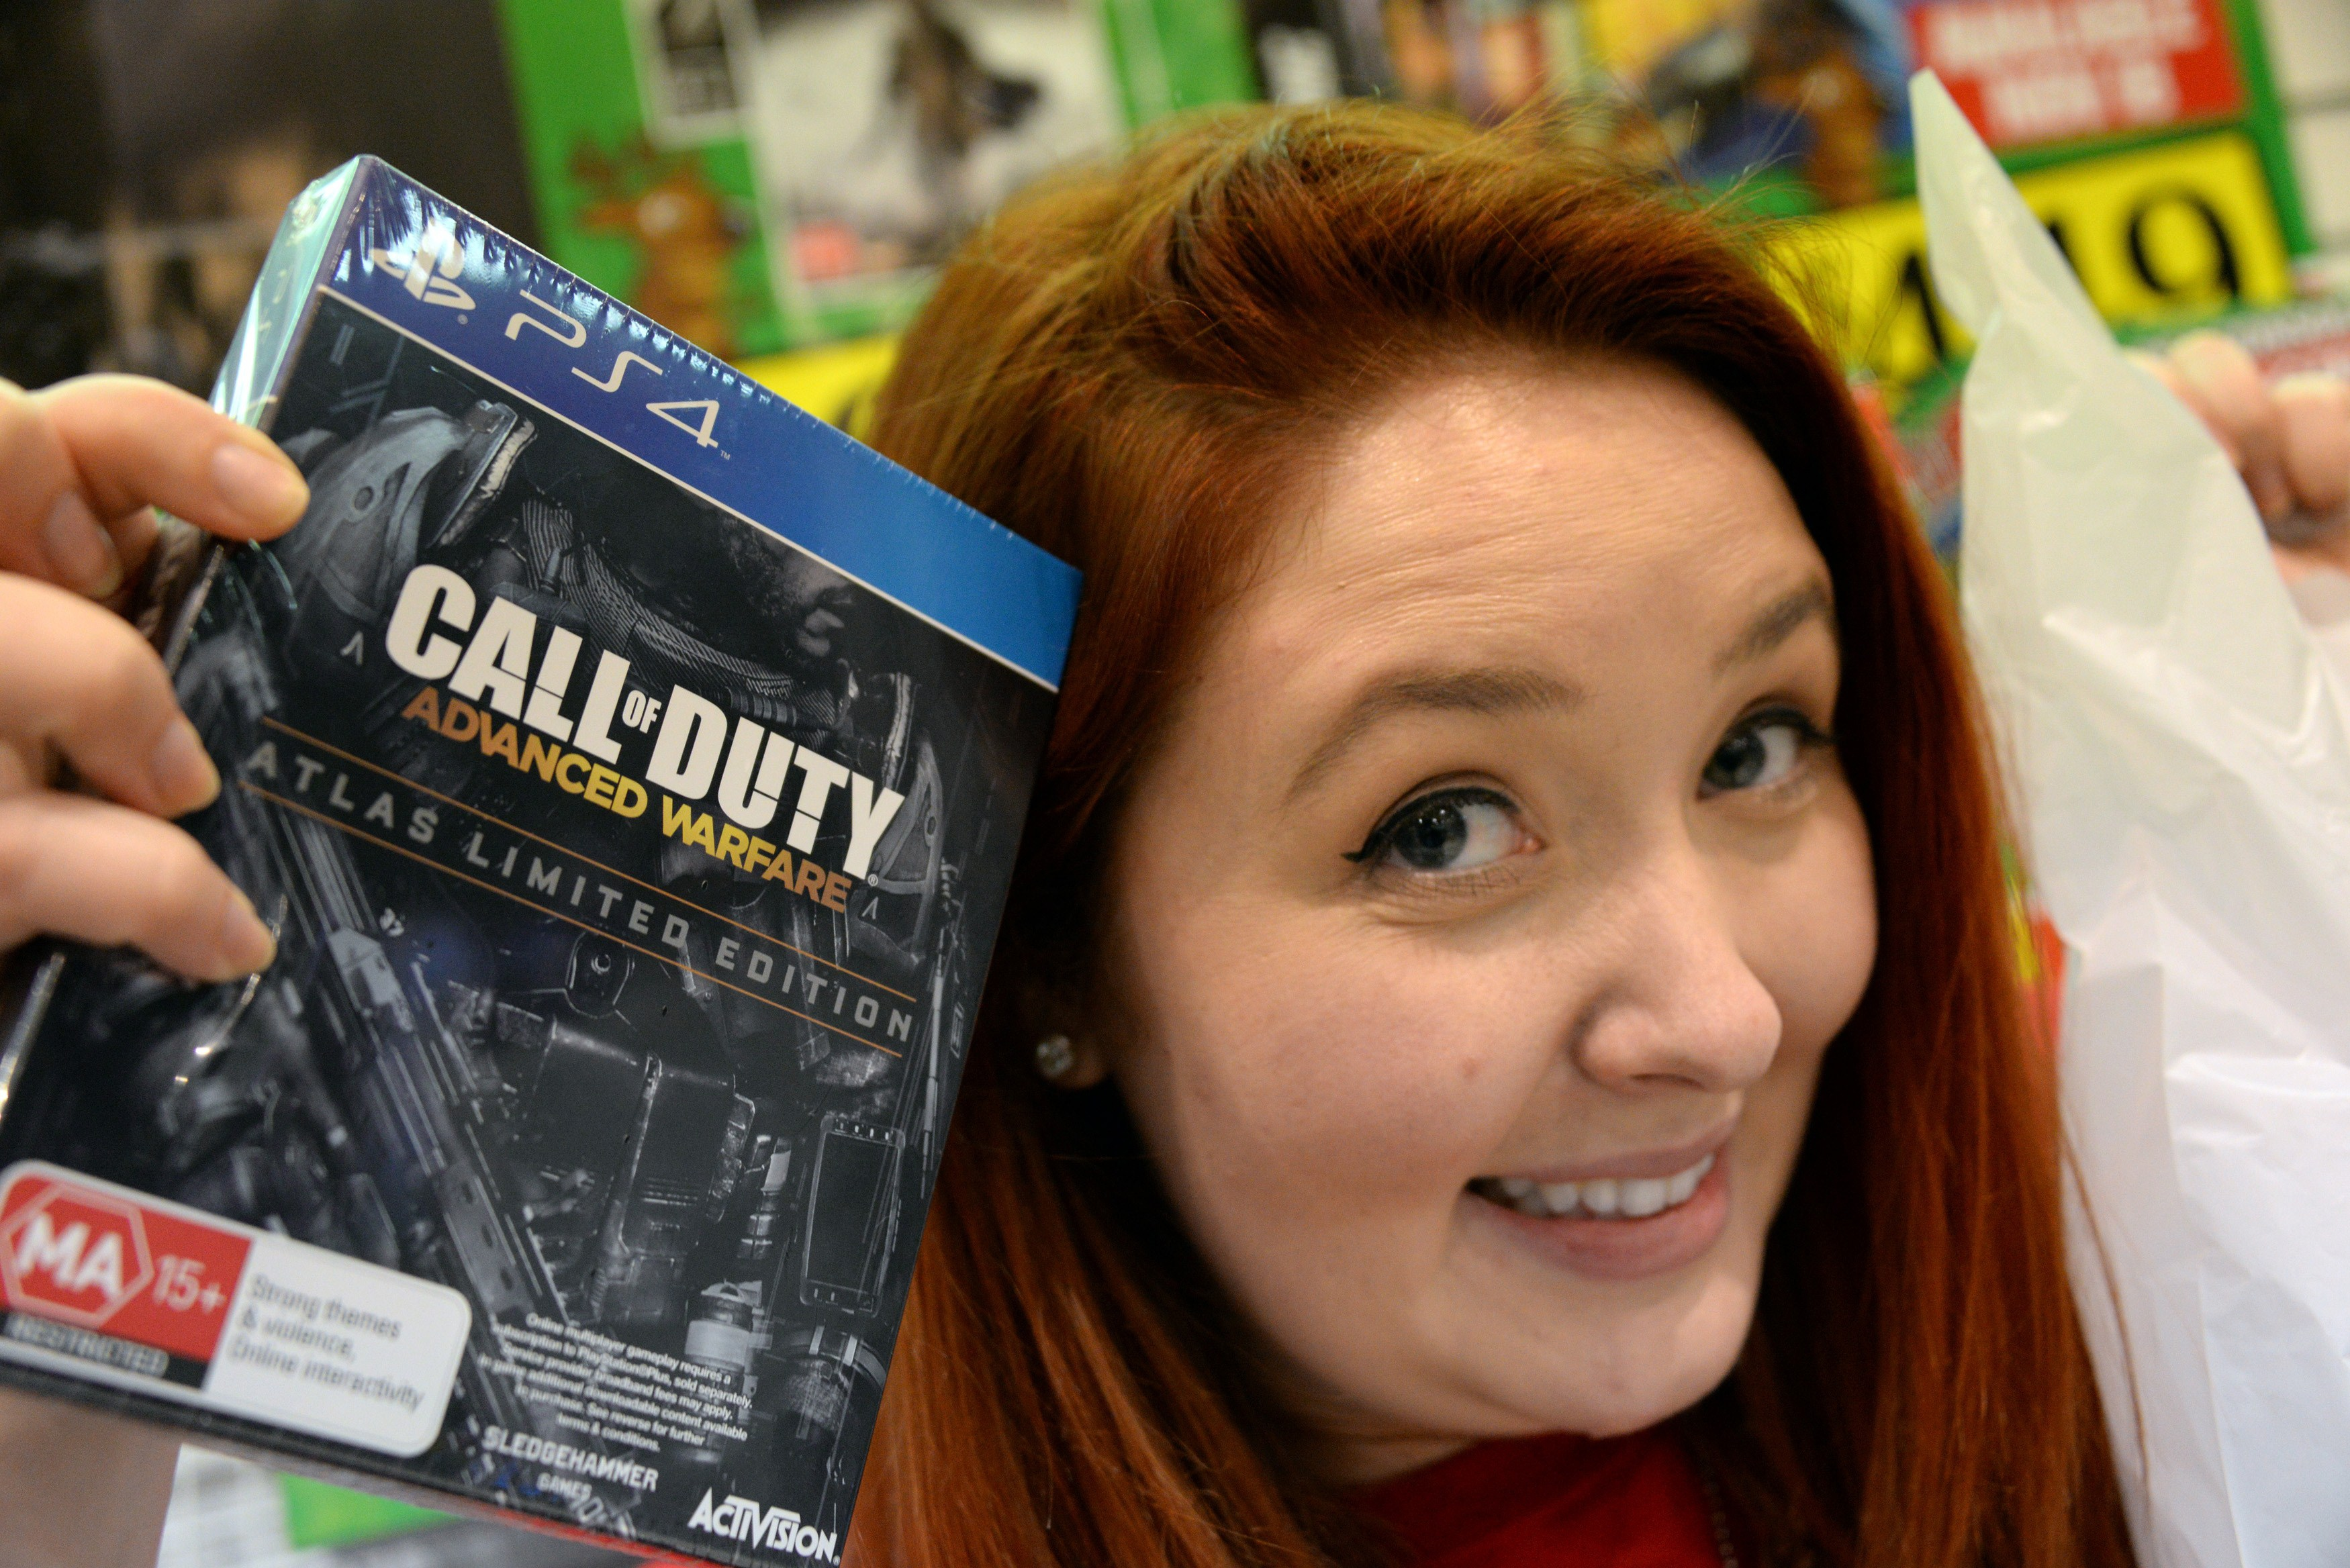 A shopper poses with the newest instalment of the  Call of Duty  videogame at a midnight launch of per-ordered copies of the game in Sydney on Nov. 3, 2014.